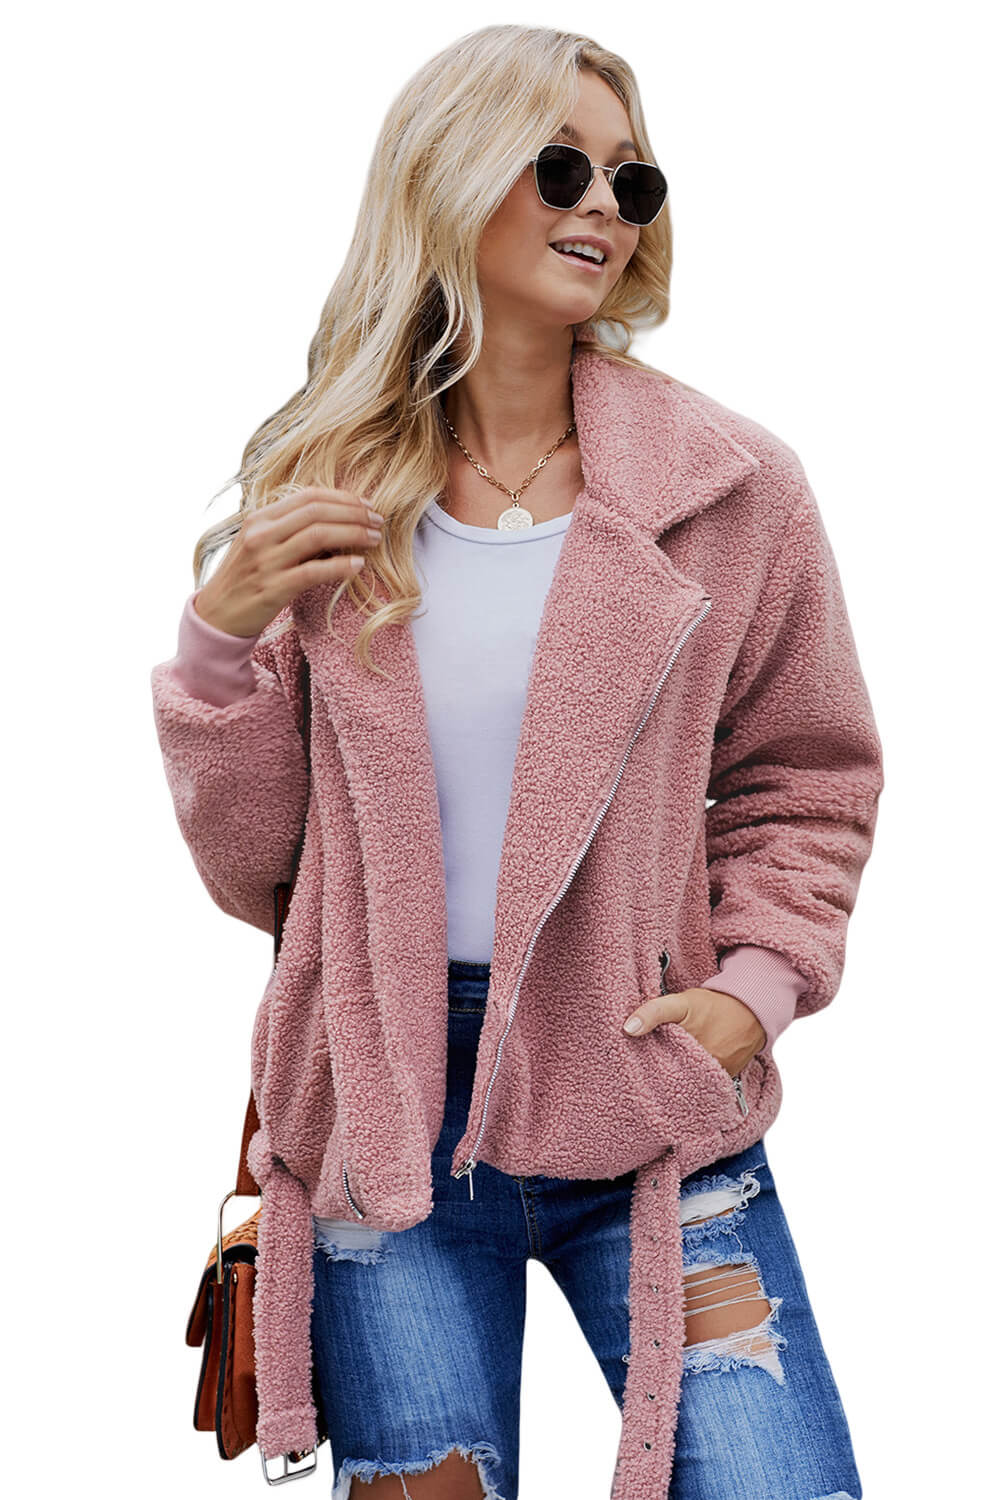 Pink Niagara Falls Pocketed Sherpa Jacket Suits & Coats Discount Designer Fashion Clothes Shoes Bags Women Men Kids Children Black Owned Business